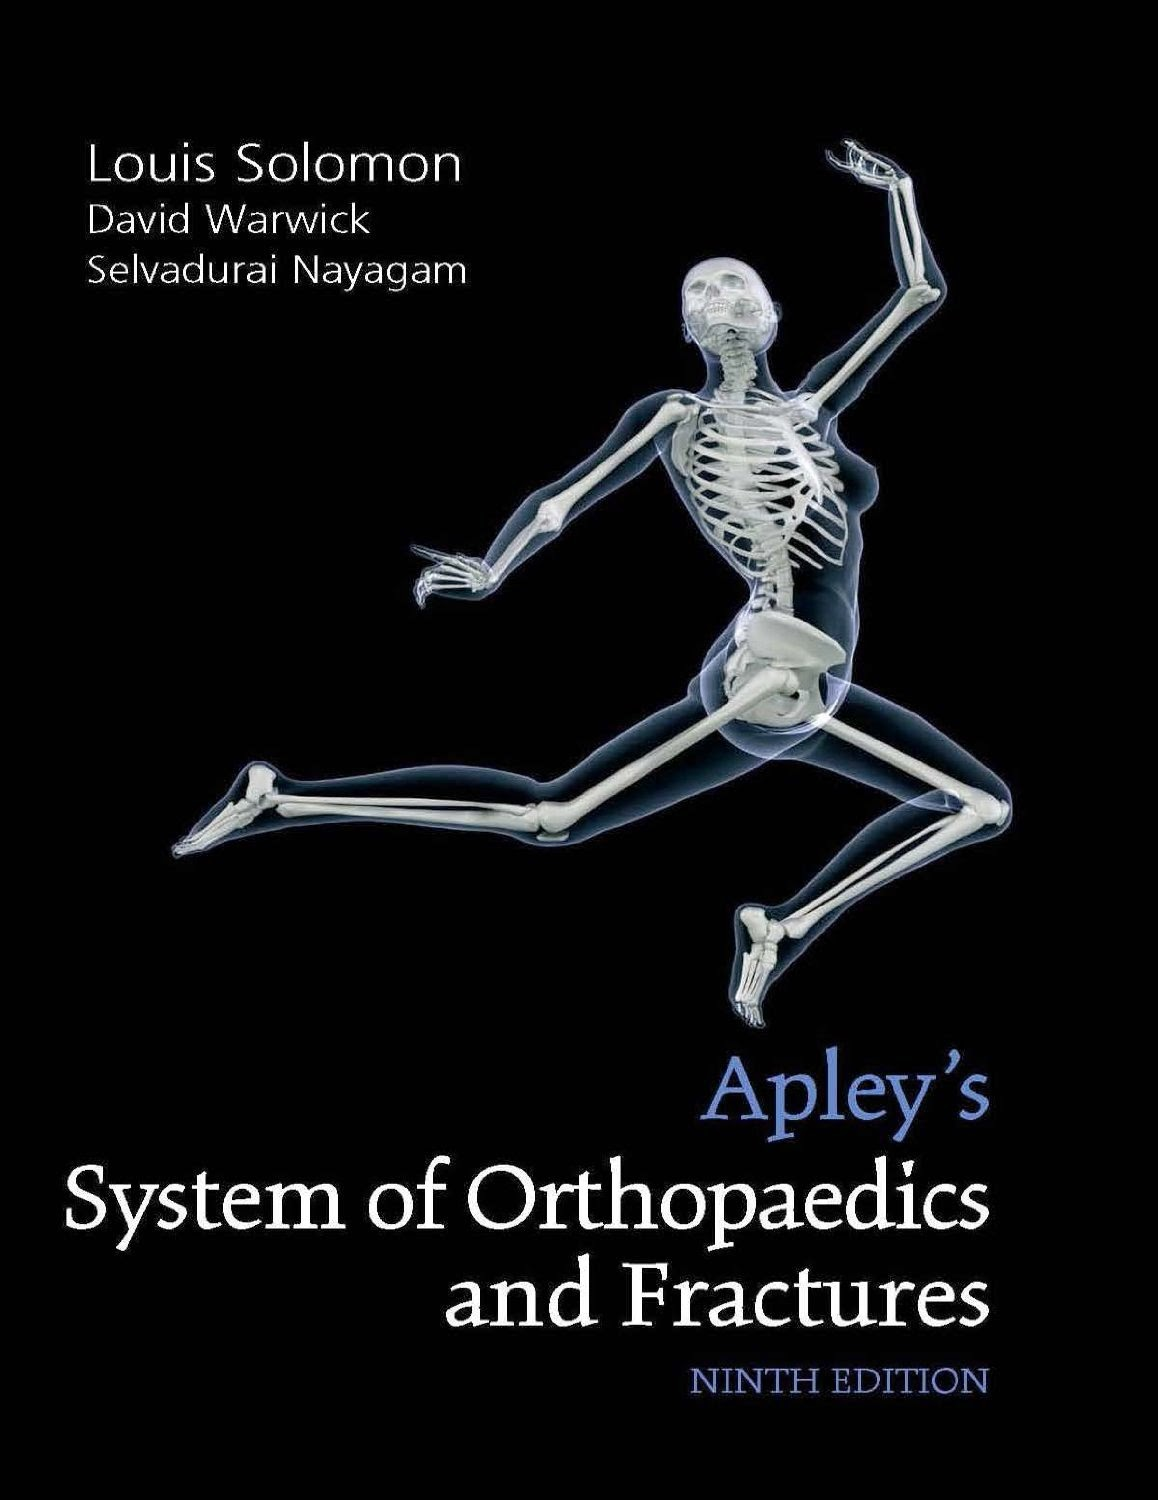 Apley's System of Orthopaedics and Fractures, Ninth edition PDF